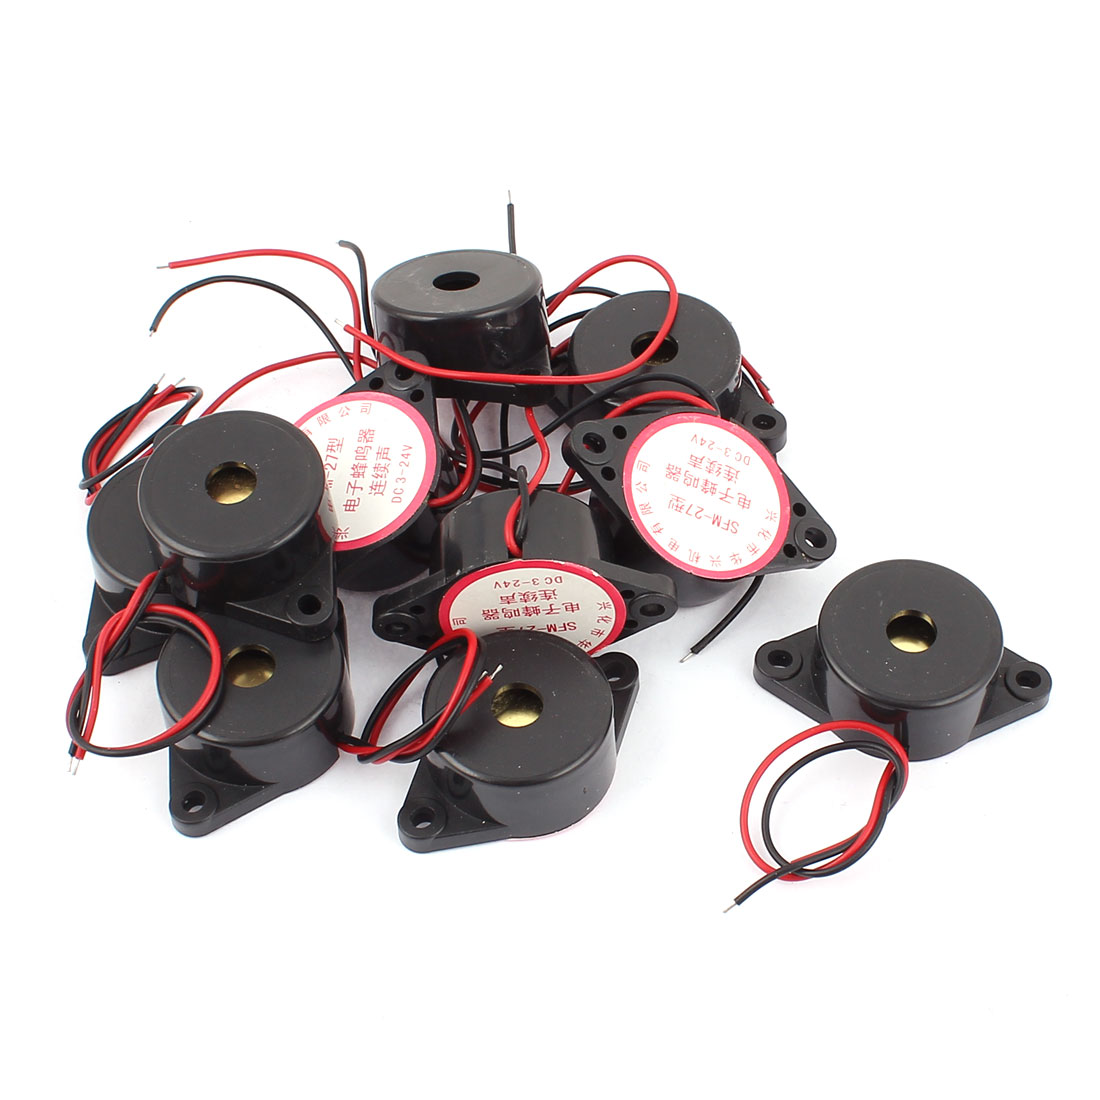 10 Pcs SFM27 DC3-24V 2-Wired Continuous Sound Electronic Alarm Buzzer Black